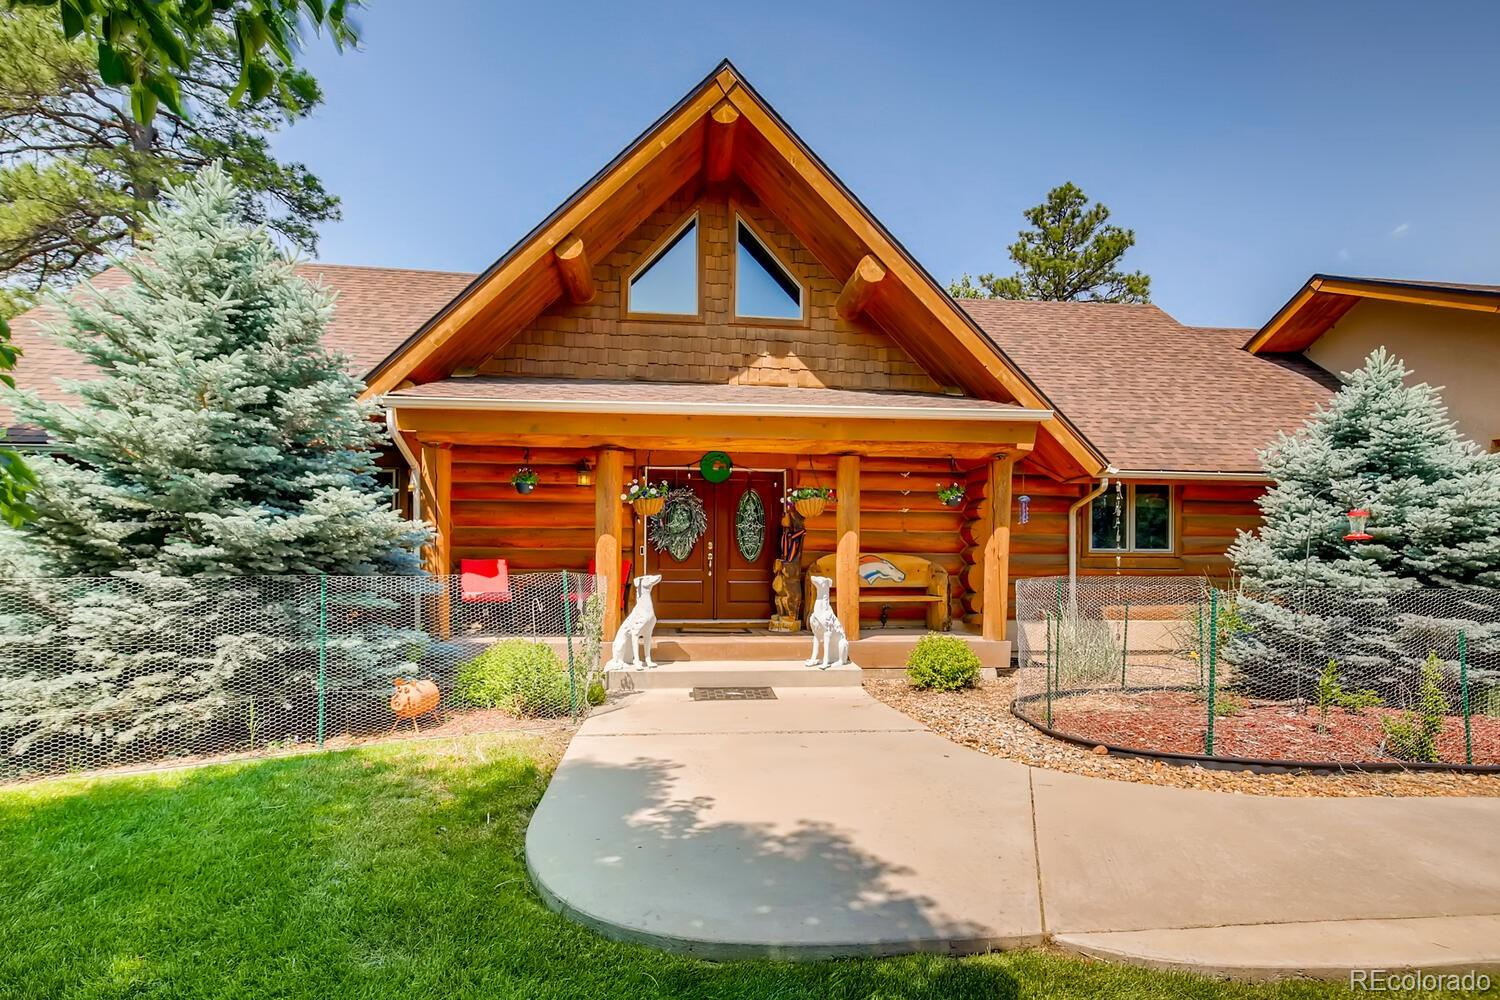 PRICE REDUCED! Close in horse property. Colorado living at its best. Beautiful Fawn Meadows ranch features 3 bedrooms (1 main / 2 conforming basement), 3 baths, great room, kitchen, finished walkout basement and 3 car garage located on over 9 acres.  Peaceful country living.  This lovely log home has been meticulously maintained – pride of ownership shines throughout. Country charm abounds with exposed logs, vaulted wood ceilings, hardwood floors and more.  Beautiful views from the master bedroom and around the property.  Relax on the wraparound covered deck in your own personal oasis.  This home is a must see.  The open kitchen is perfect for entertaining and features stainless steel appliances and a gas cooktop, breakfast bar and dining area.  The many windows allow the natural sunlight to cascade in – bright and cheerful.  Enjoy gardening in the beds or strolling through the mature pines.  The finished walkout basement is perfect for guests or that teen wanting their own space.  The spacious barn has many possibilities and would make a great workshop.  This home lives large.  Close to the town of Elizabeth, providing easy access to dining, shopping, entertainment and other amenities.  Don't miss your opportunity to own this spectacular property.  Domestic Well. Welcome Home!